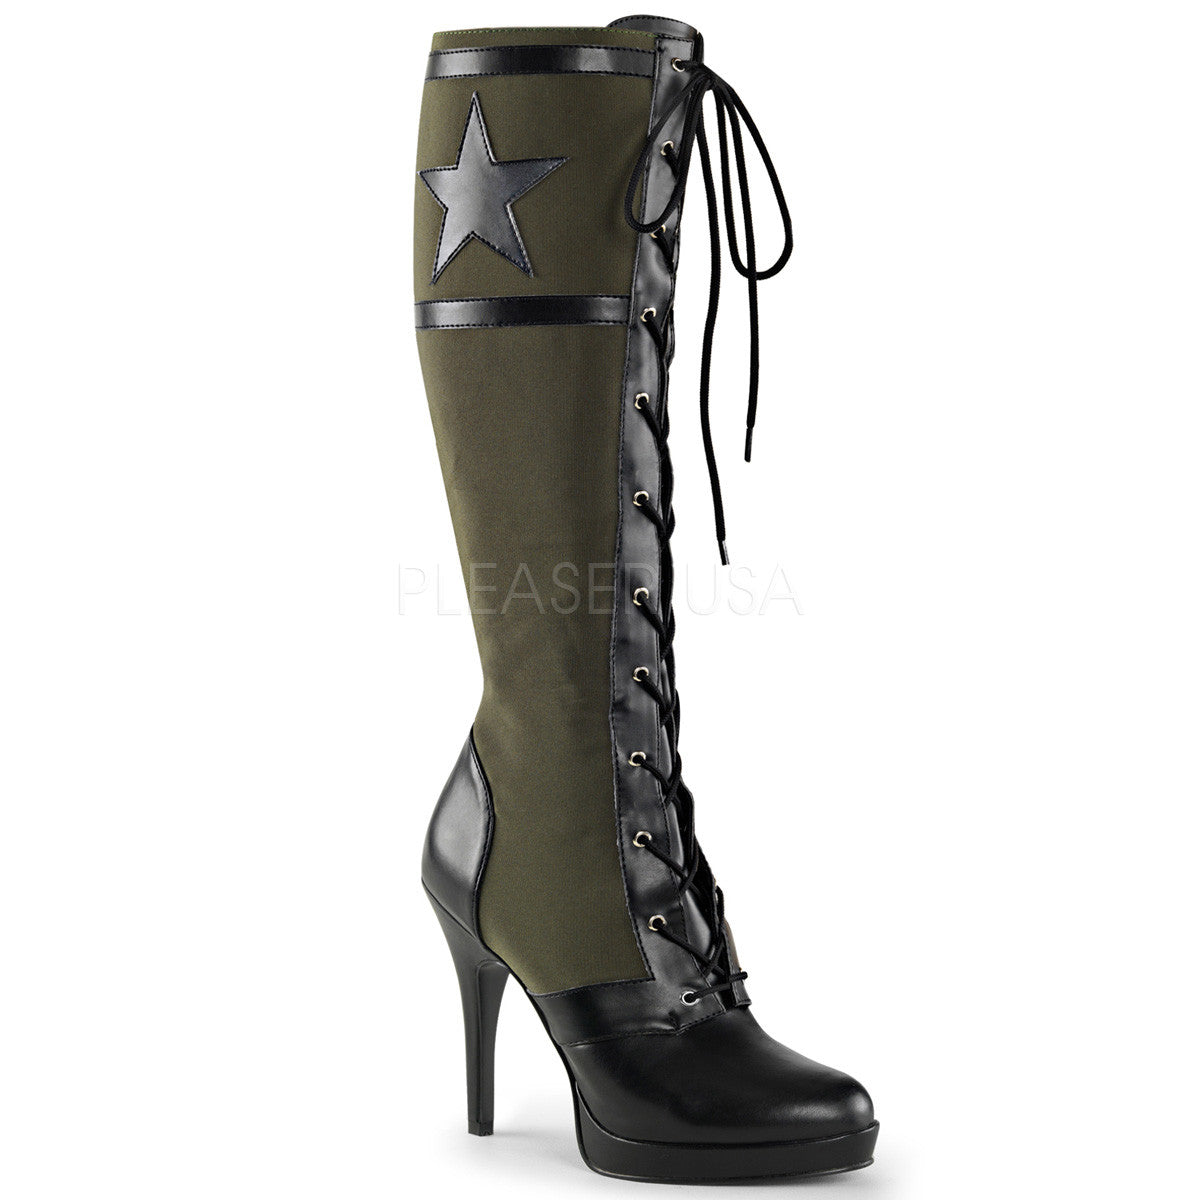 Funtasma ARENA-2022 Black Pu-Army Green Canvas Knee High Military Boots - Shoecup.com